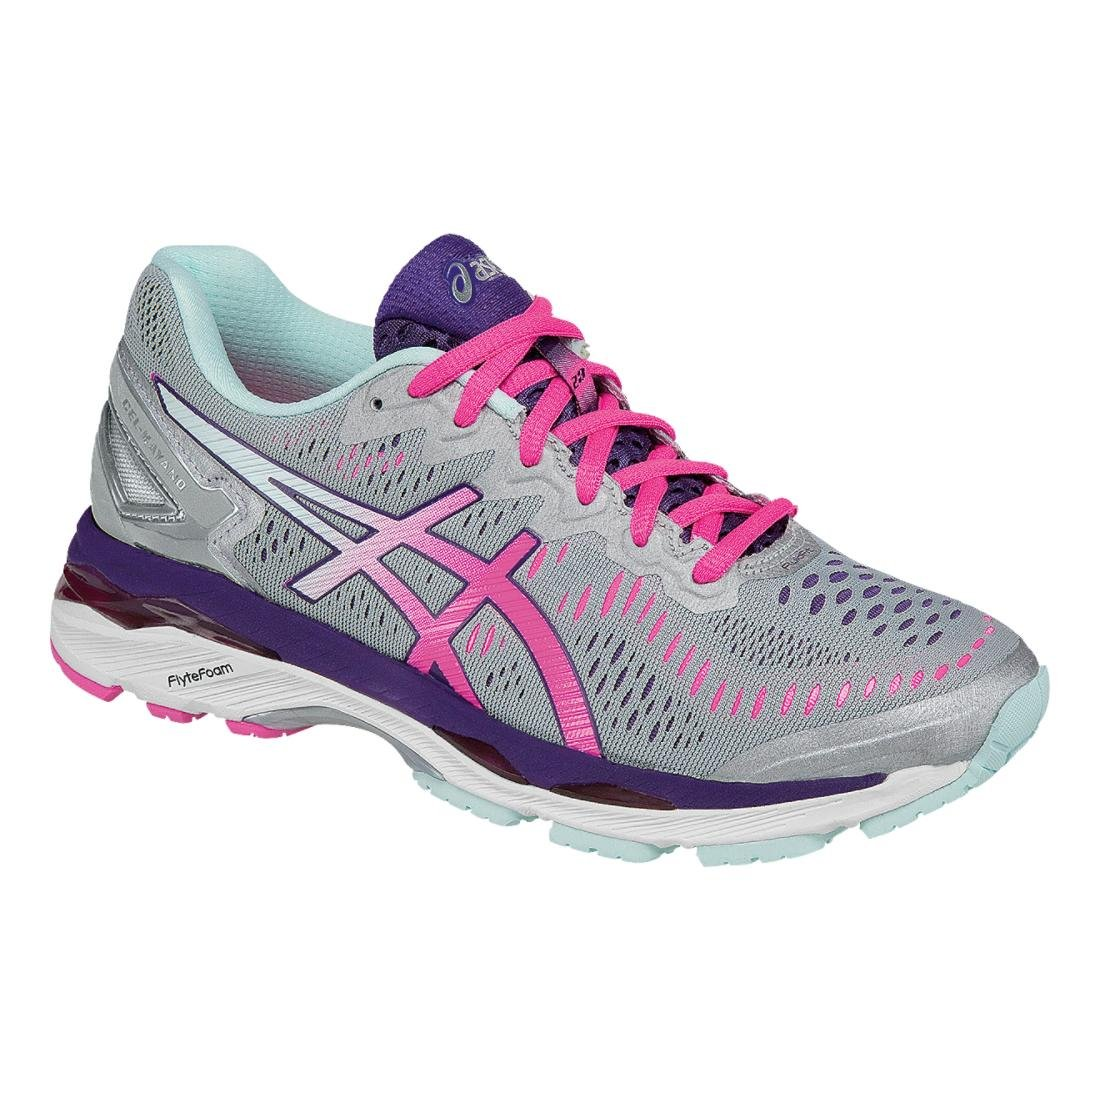 ASICS Women's Gel-Kayano 23 Running Shoe, Silver/Pink Glow/Parachute Purple, 9 M US